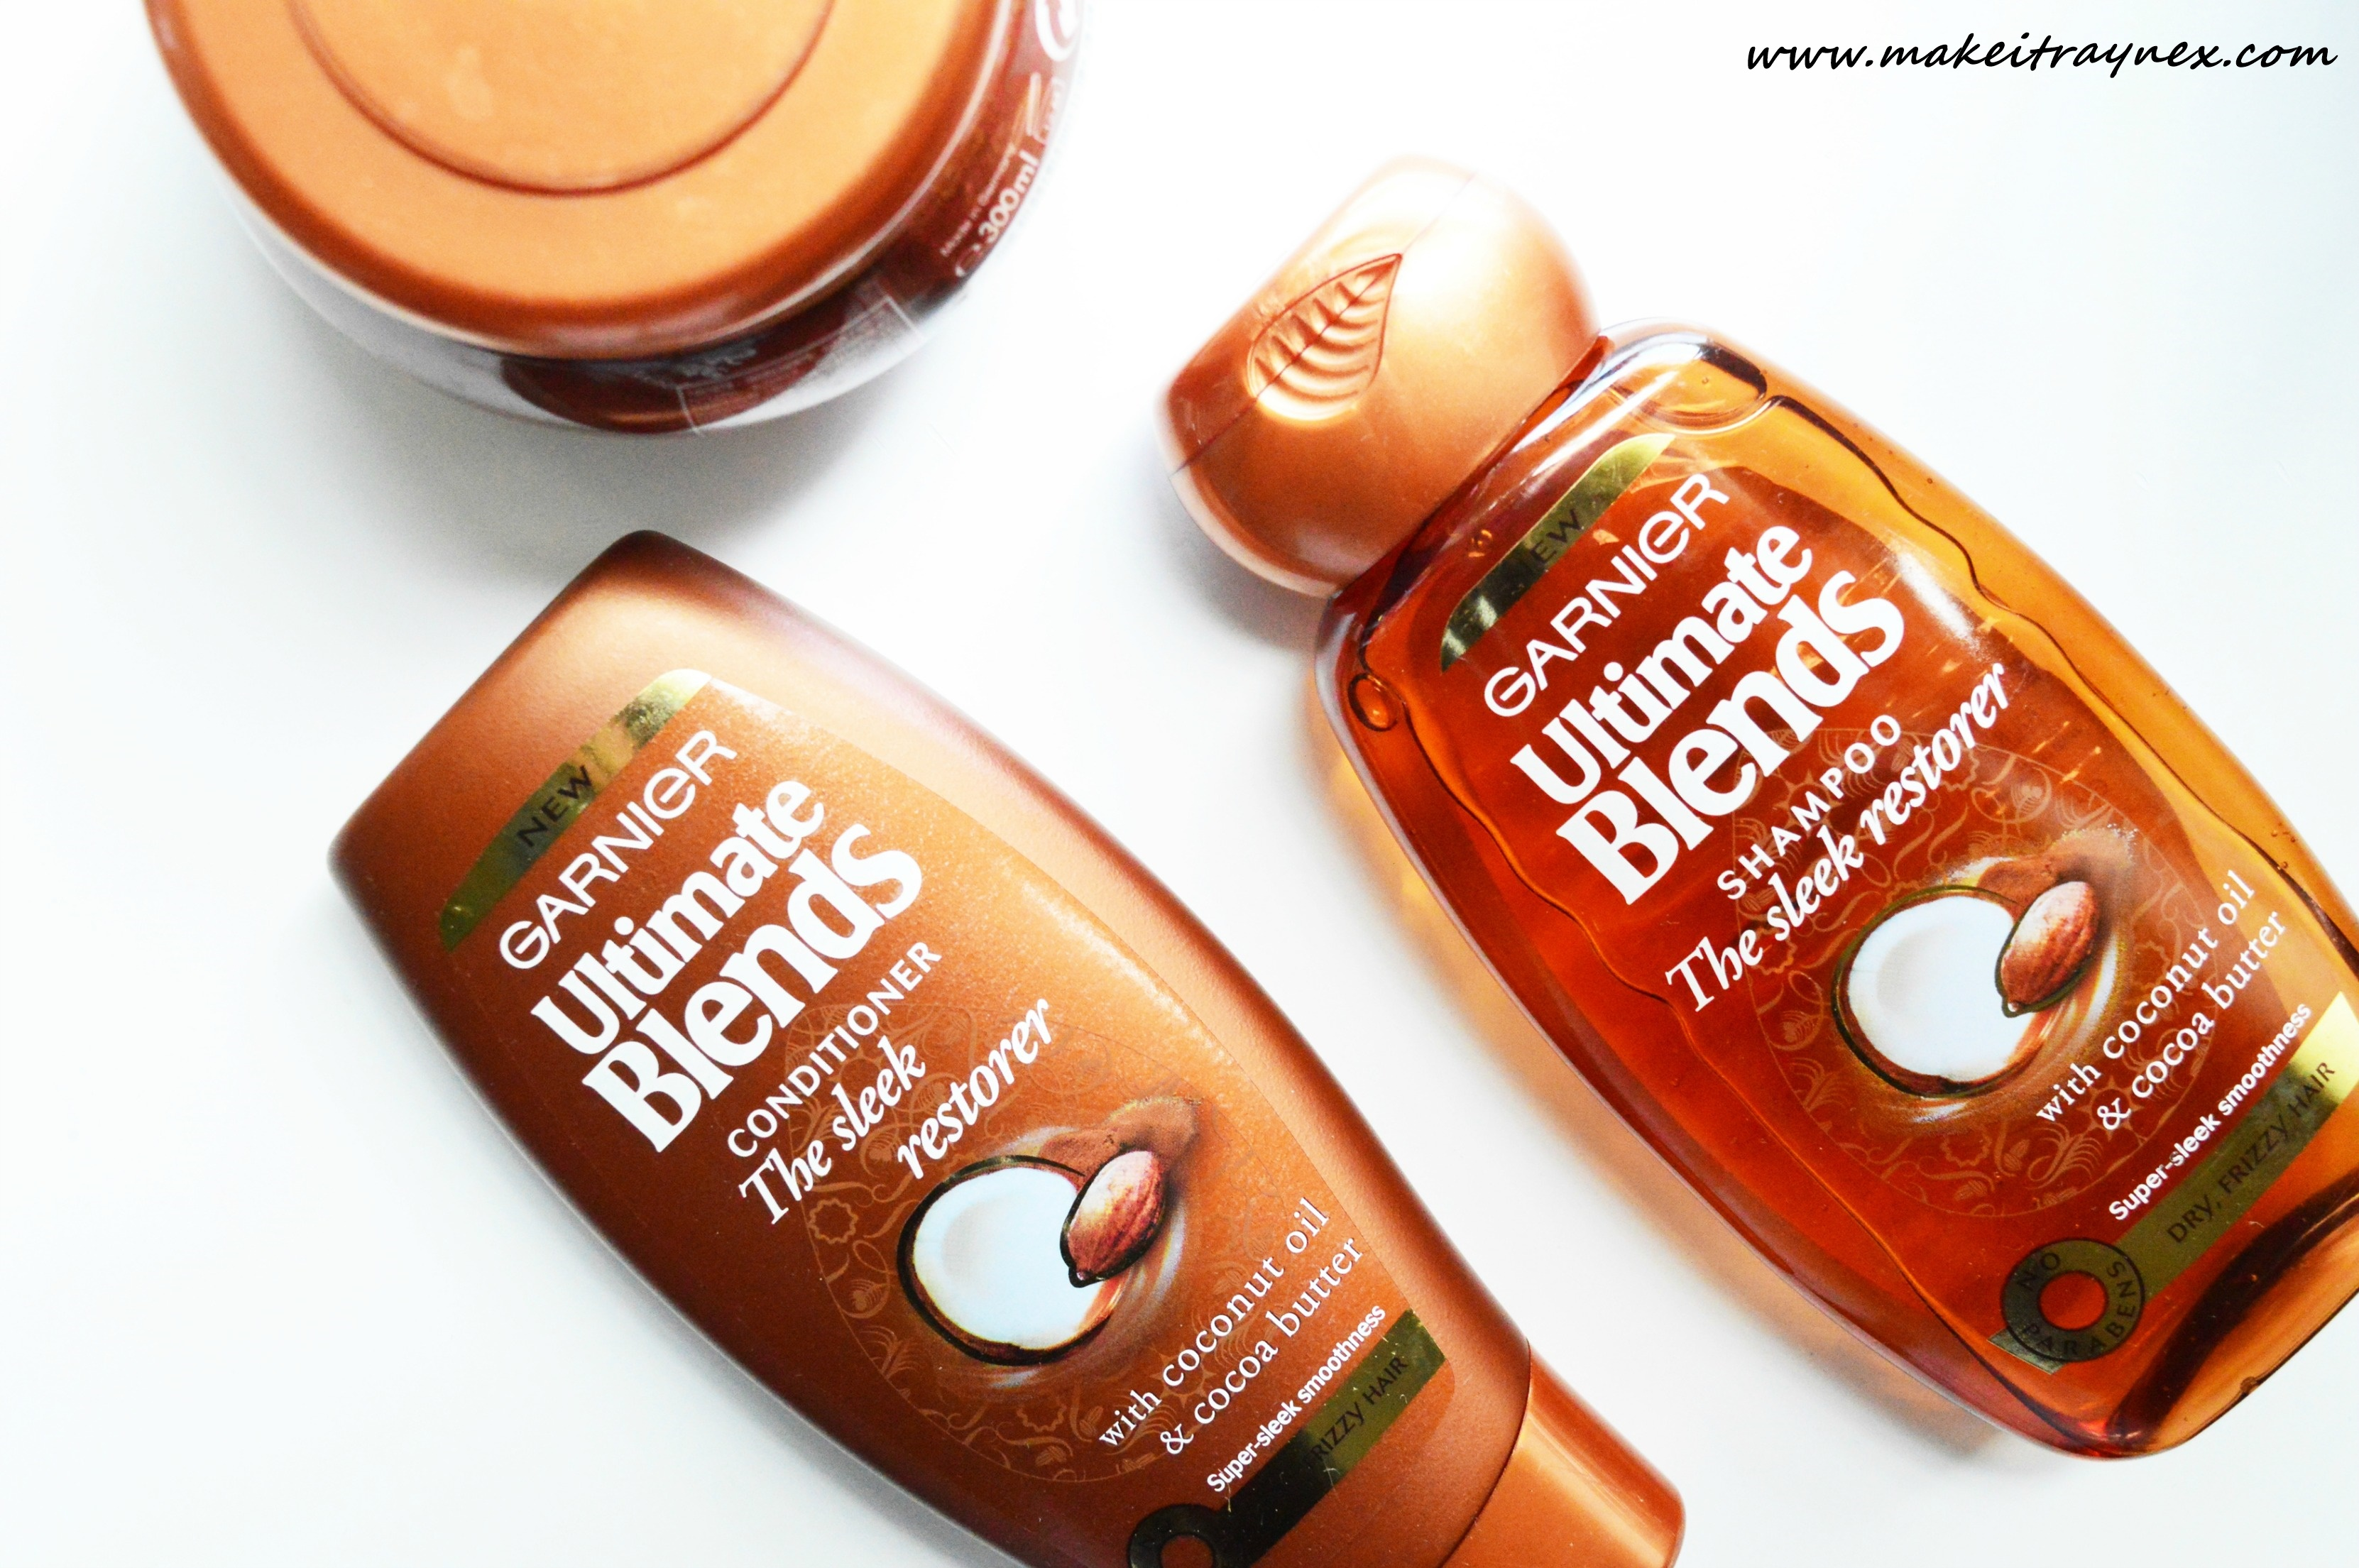 The 'Sleek Restorer' Range from Garnier Ultimate Blends {REVIEW}